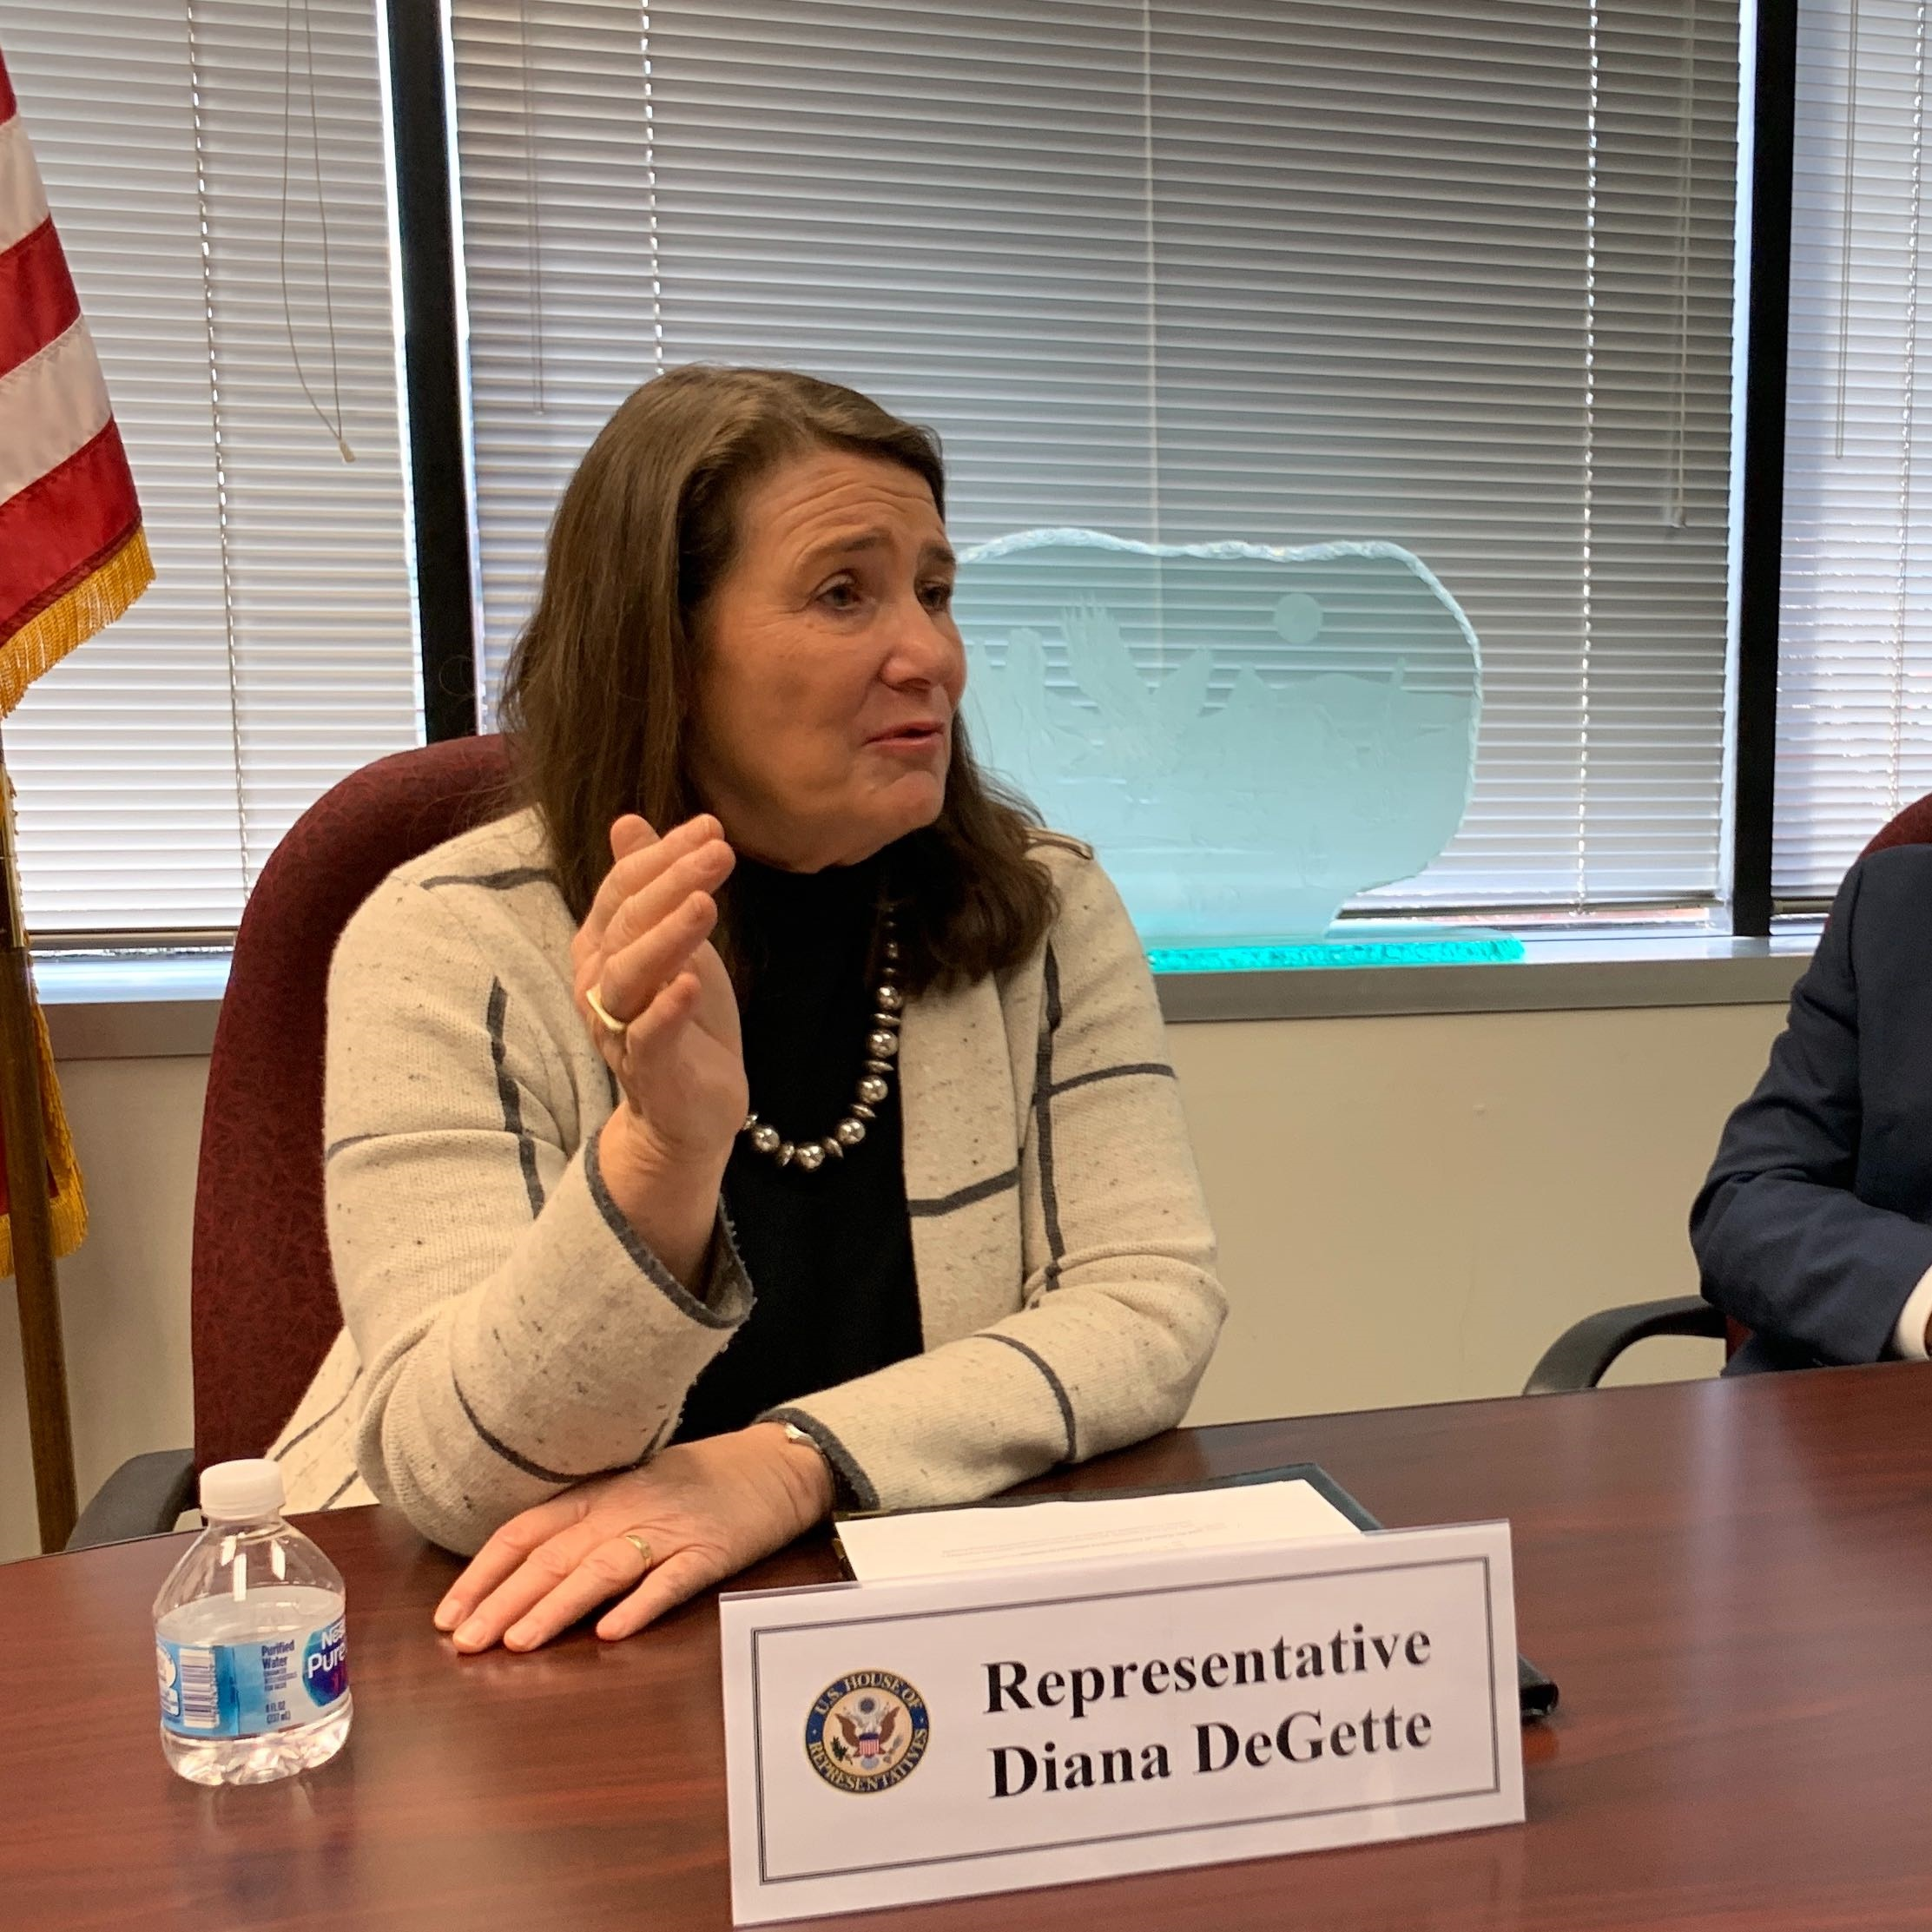 Rep. Diana DeGette (D-Denver) at her office in Denver, Nov. 4, 2019.